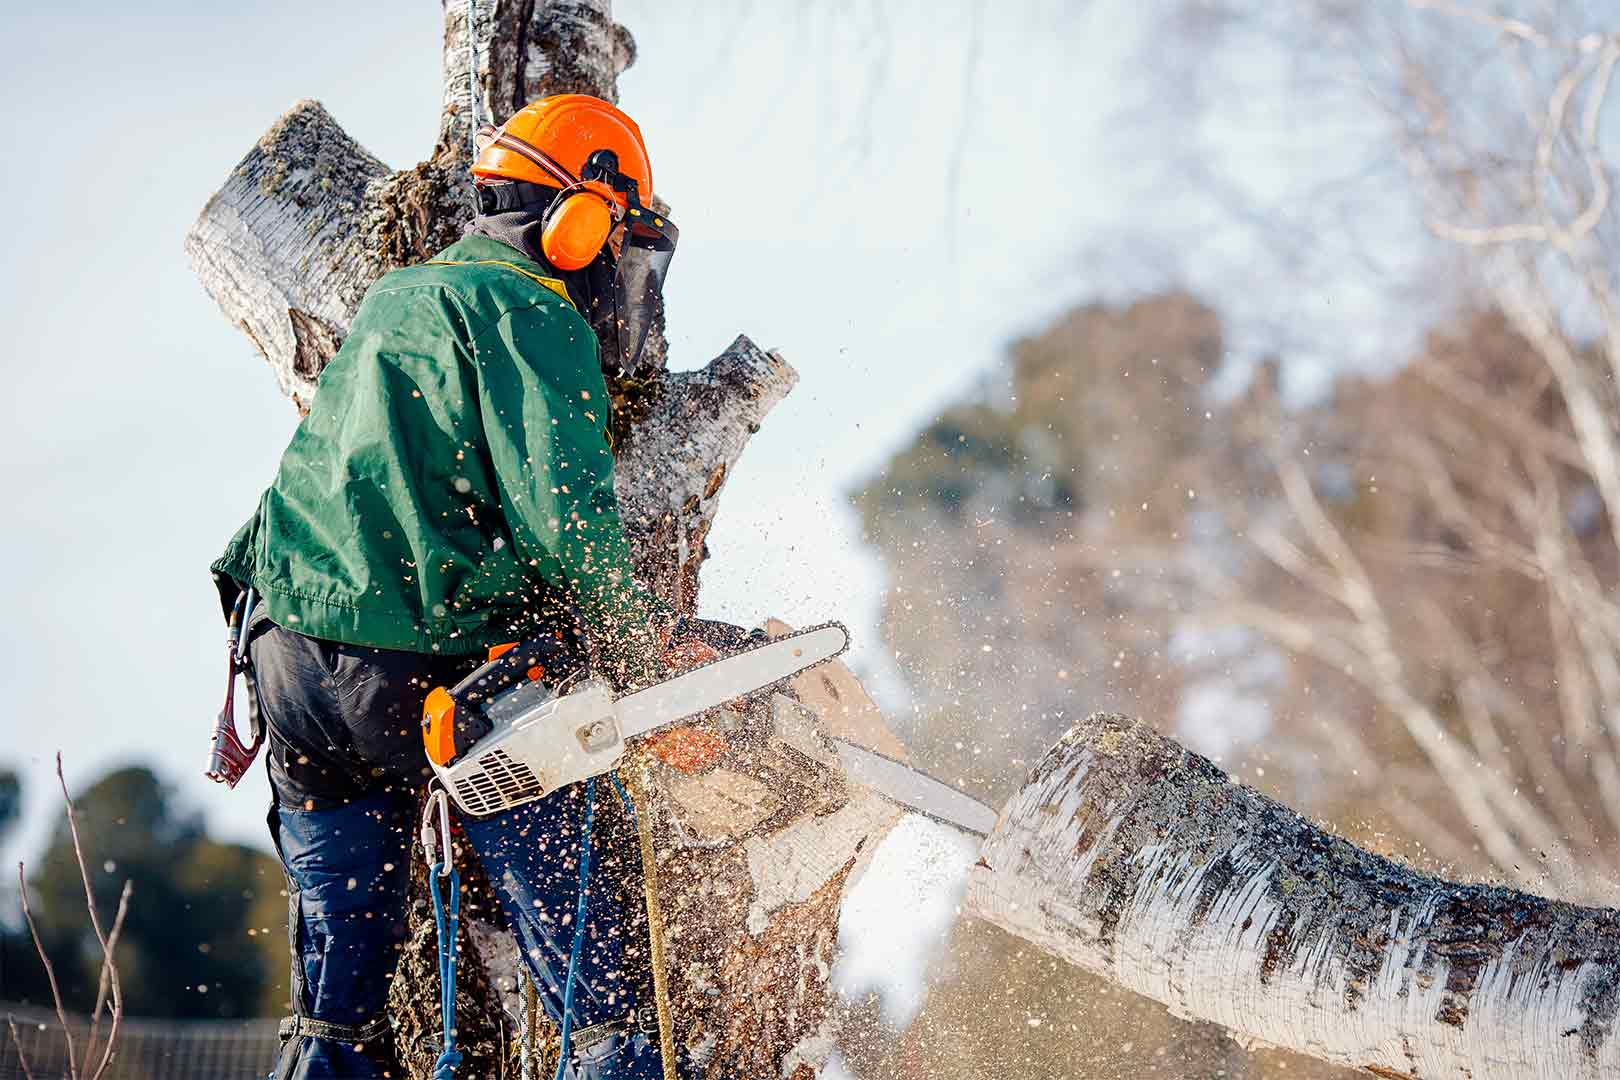 Del Mar CA Tree Trimming and Stump Grinding Services Home Page Image-We Offer Tree Trimming Services, Tree Removal, Tree Pruning, Tree Cutting, Residential and Commercial Tree Trimming Services, Storm Damage, Emergency Tree Removal, Land Clearing, Tree Companies, Tree Care Service, Stump Grinding, and we're the Best Tree Trimming Company Near You Guaranteed!